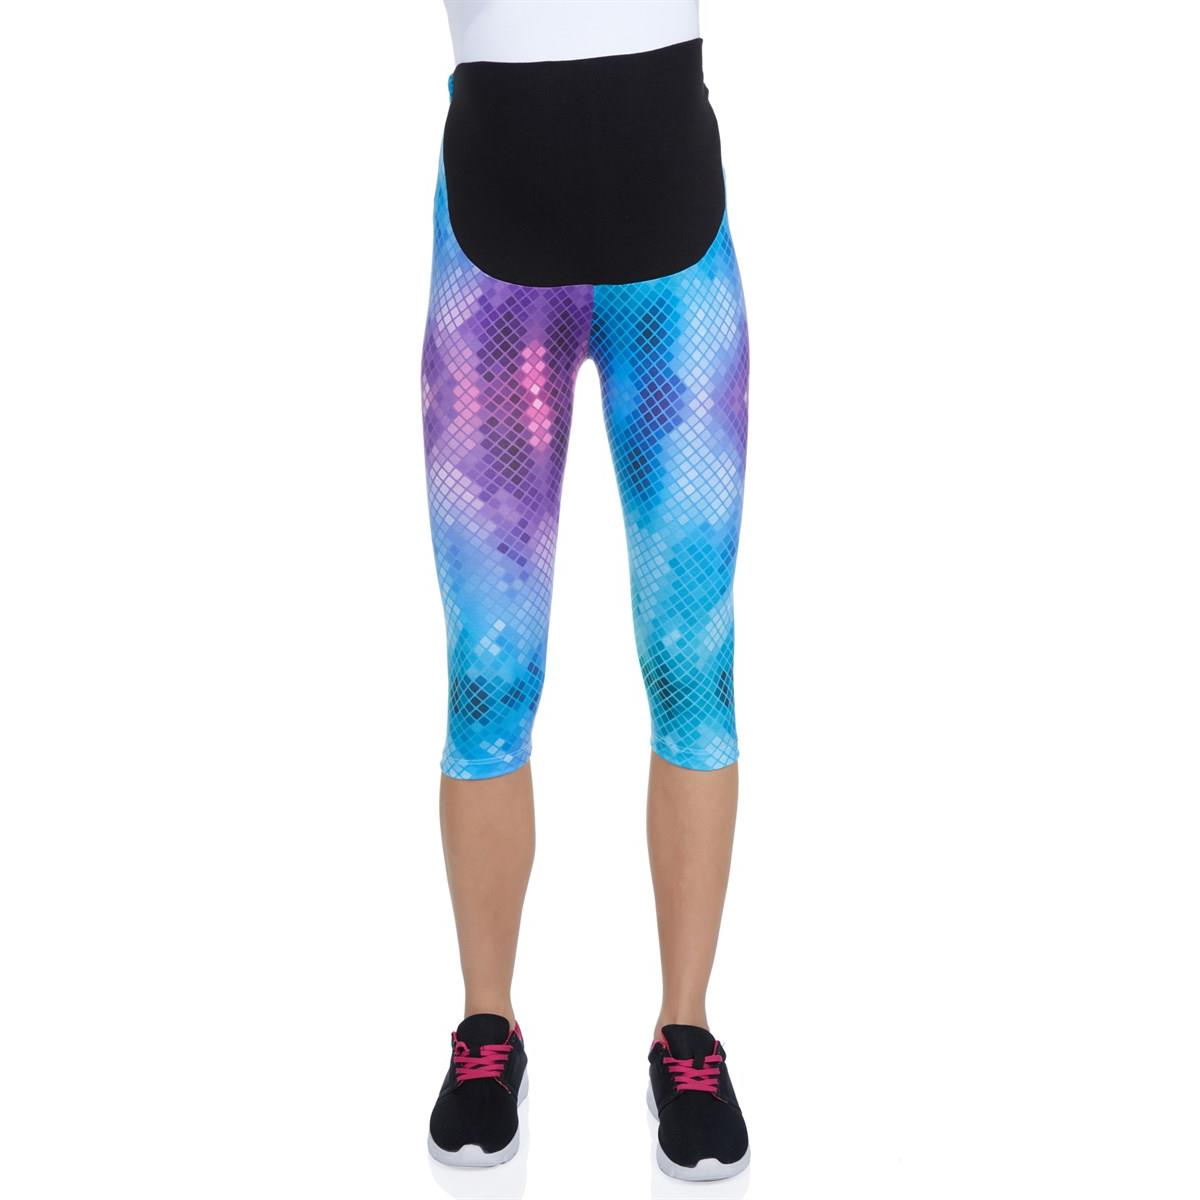 LuvmaBelly 8019 Maternity - Cotton Belly-Pregnant Tights Capri Yoga Sport Series Assisted